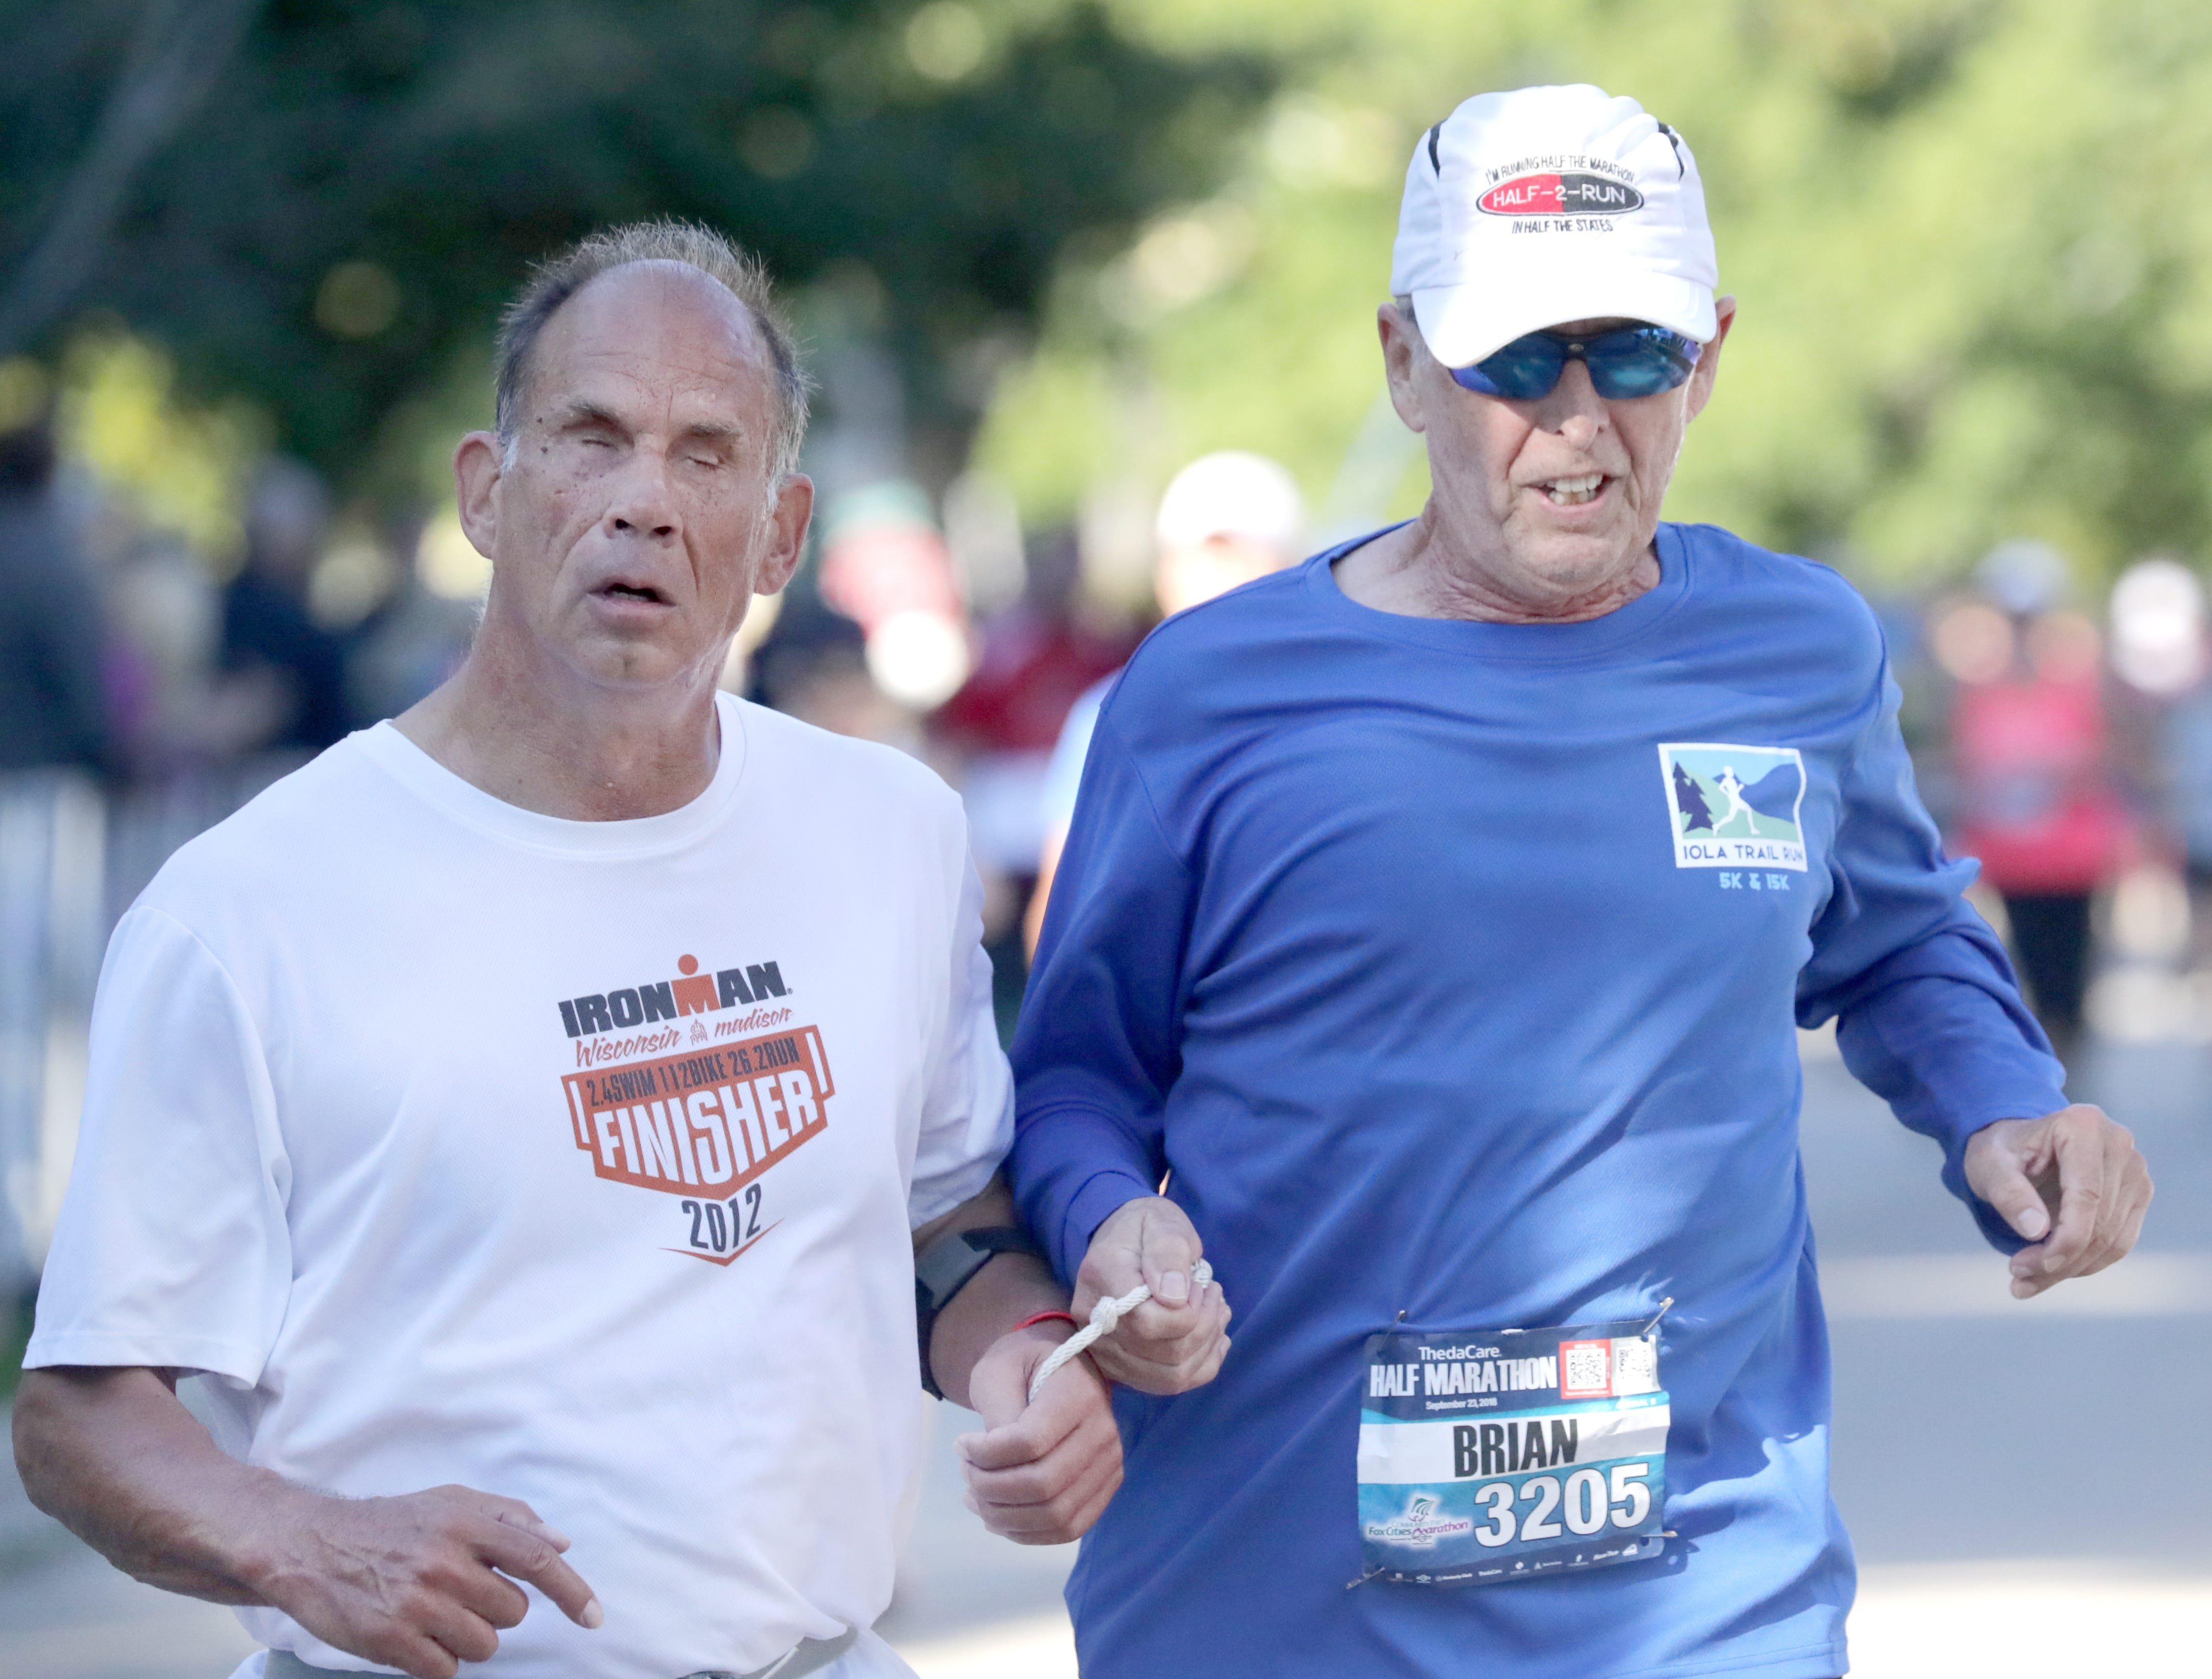 Rod Maccoux and Brian Christoffel cross the finish line in the half marathon event during the 28th annual Community First Fox Cities Marathon on Sunday, September 23, 2018, in Neenah Wis. Wm. Glasheen/USA TODAY NETWORK-Wisconsin.